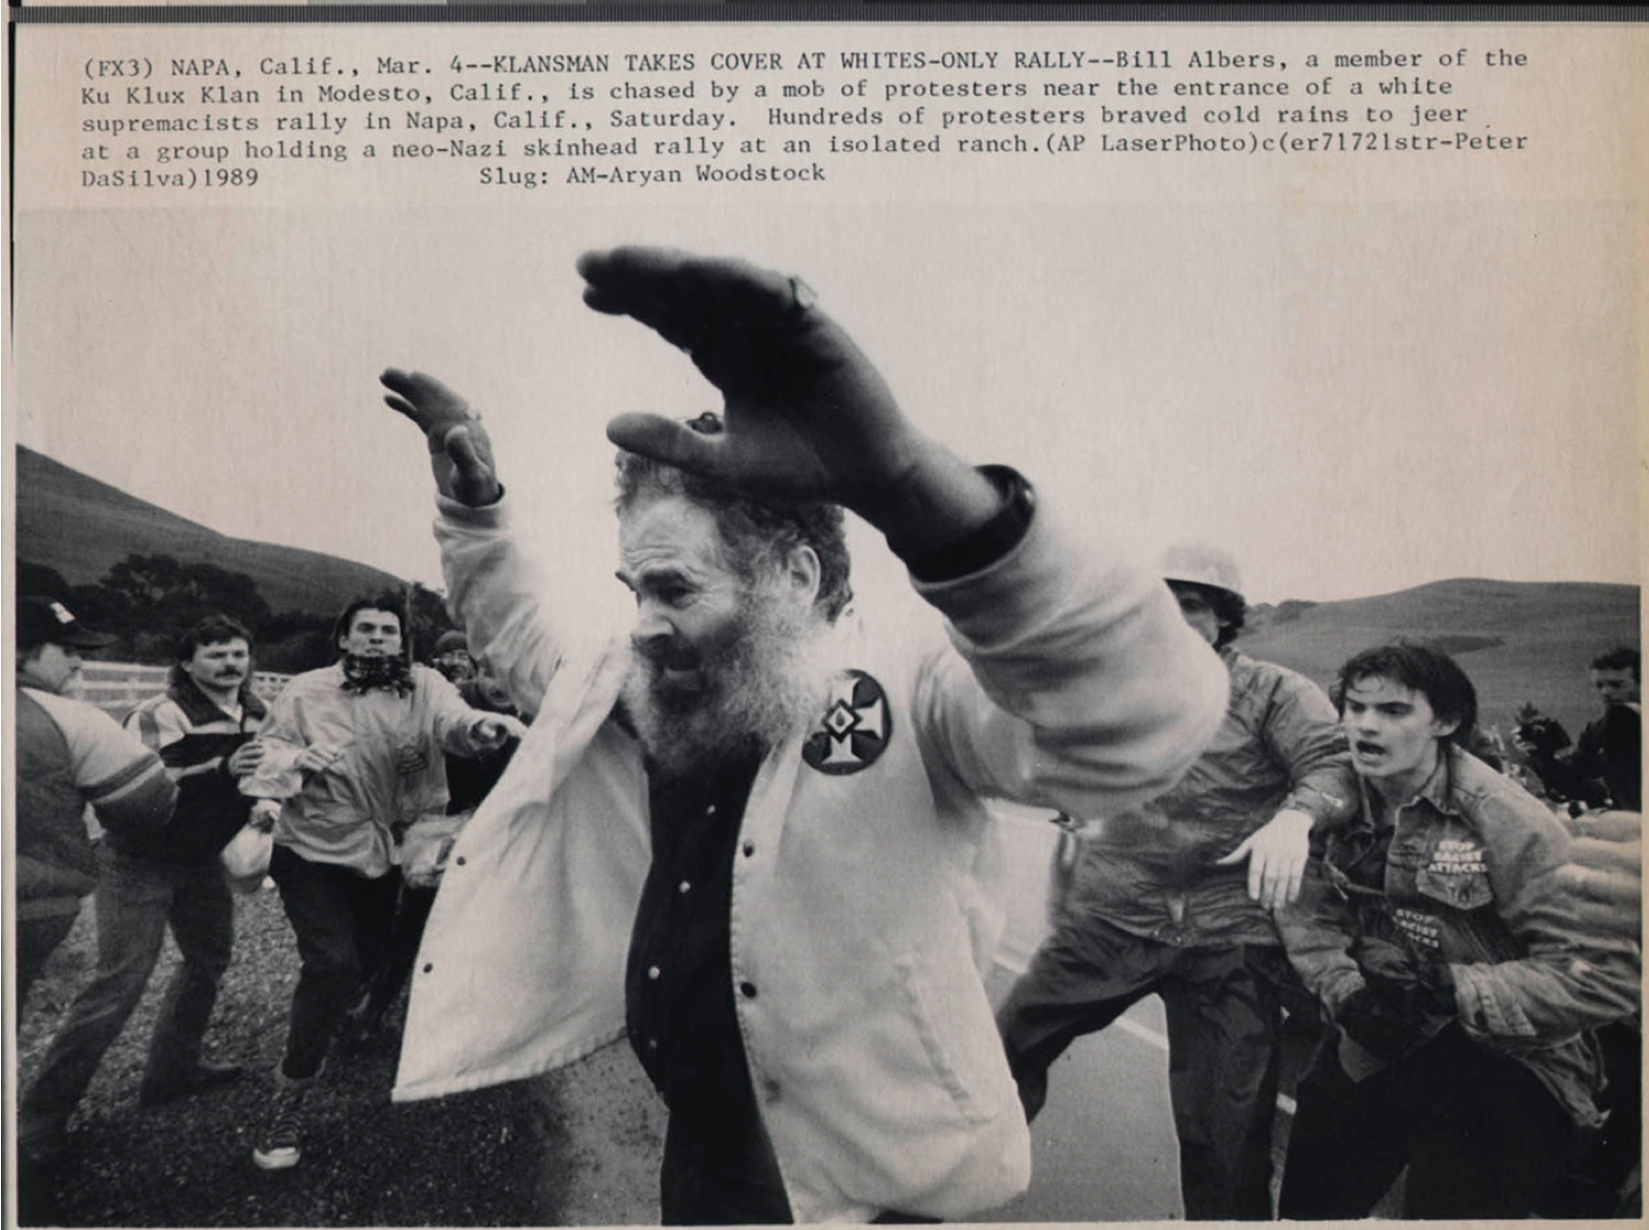 Bill Albers, a member of the Ku Klux Klan being chased by a mob of protesters. AP/Peter DaSilva